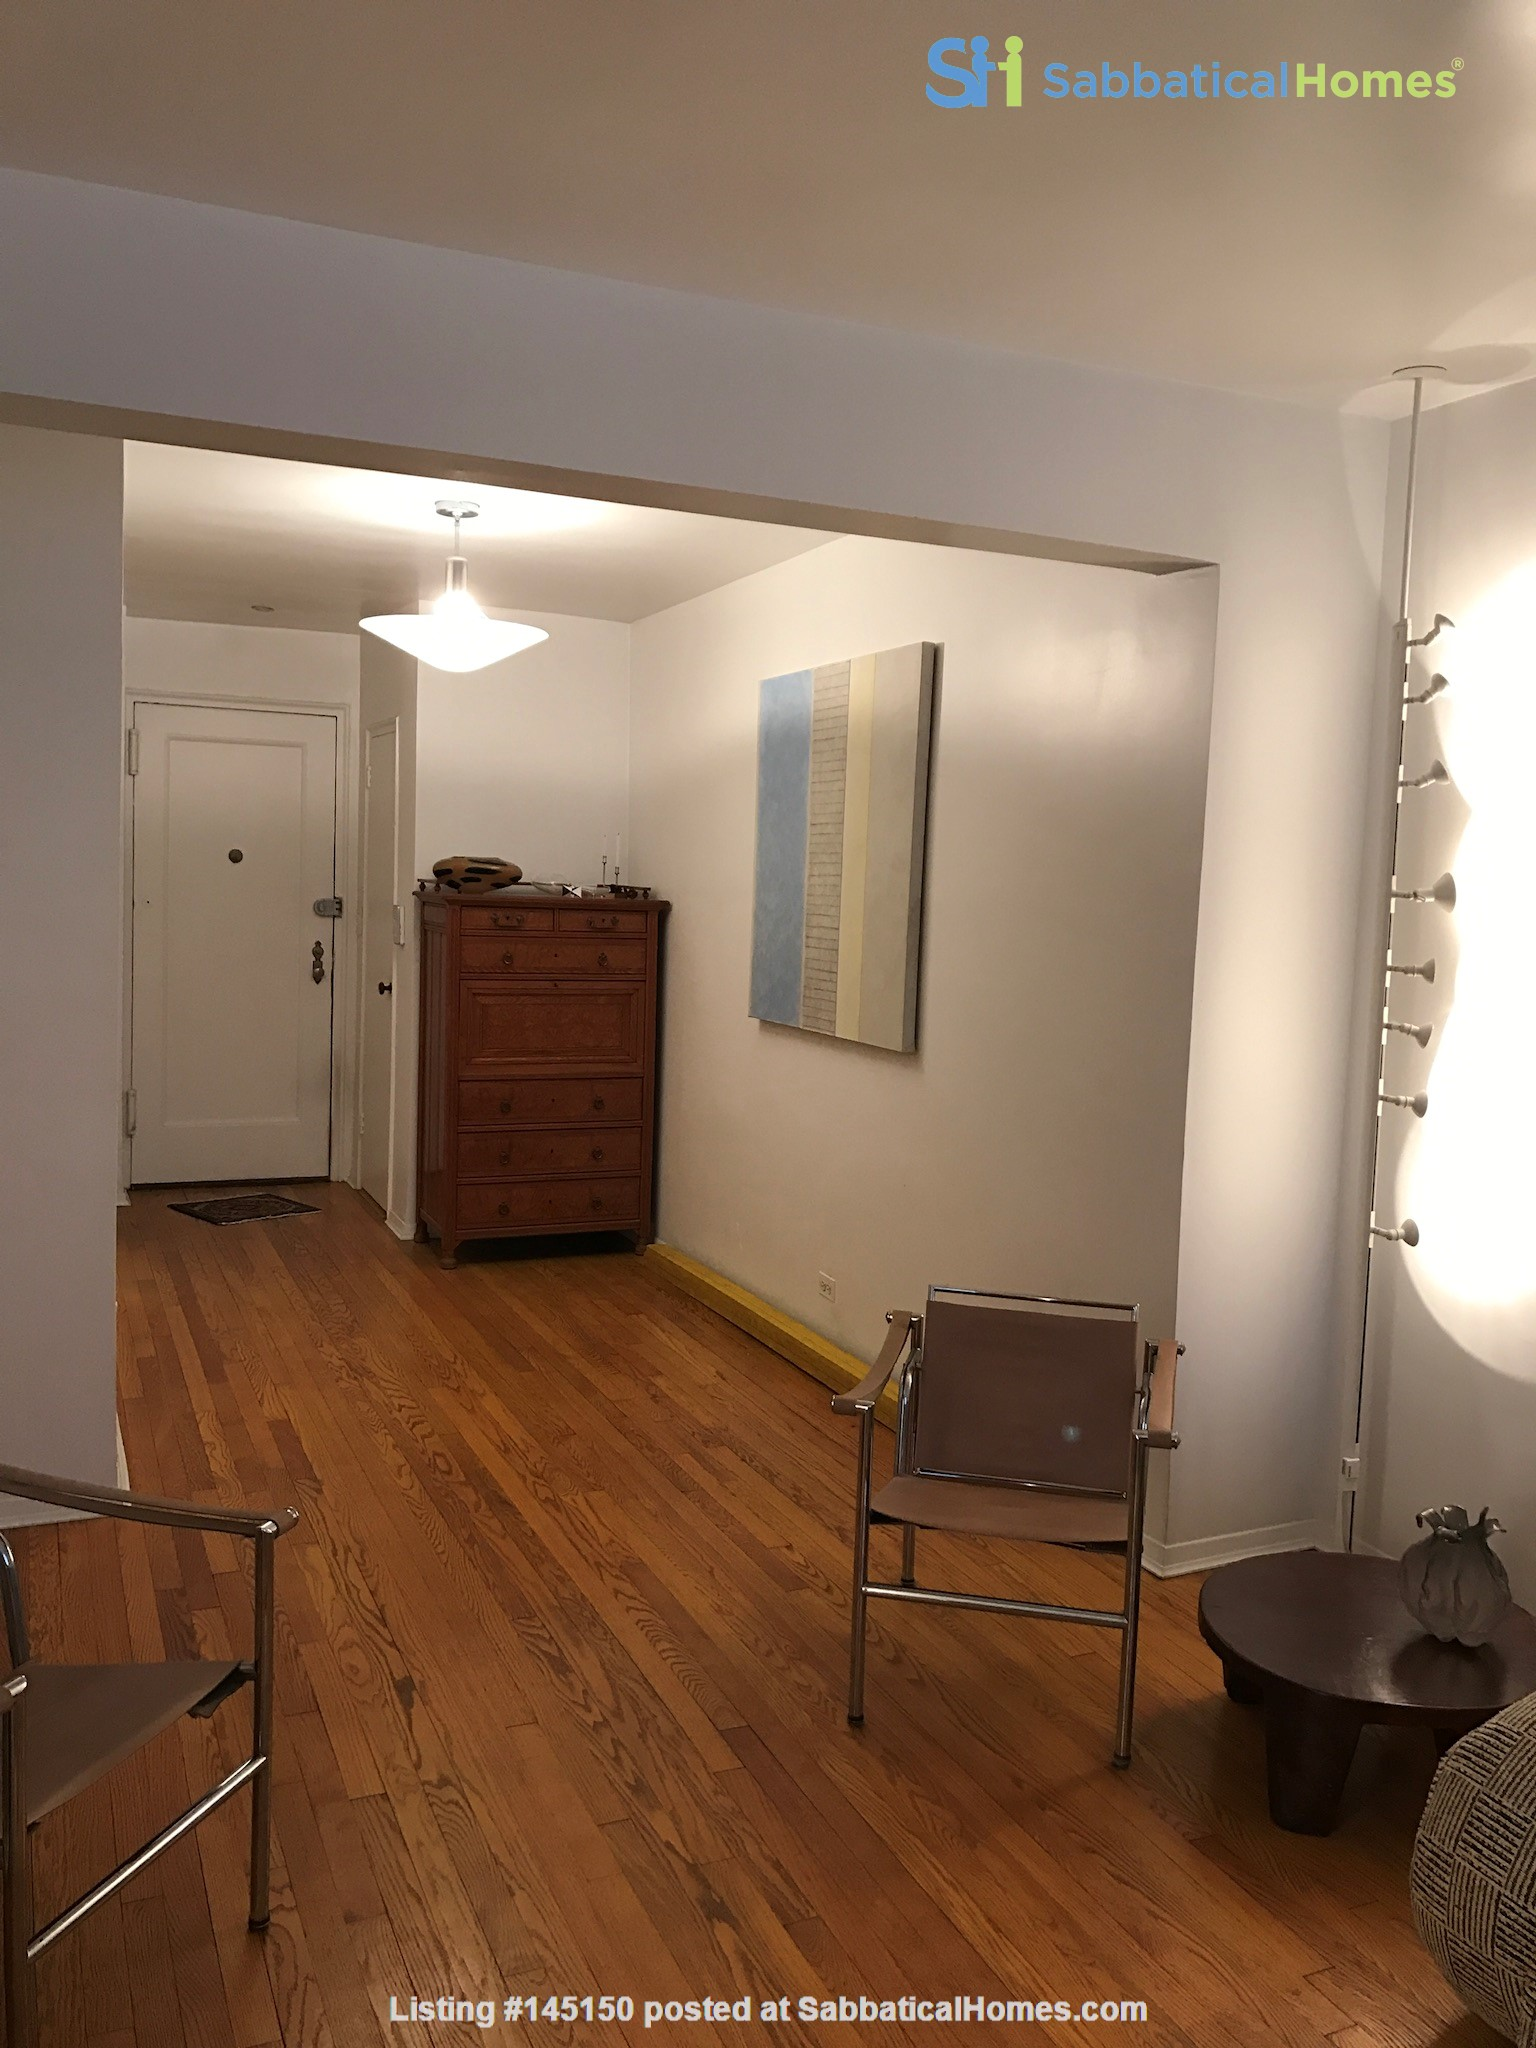 Steps from Central Park, place full of art and sun. Home Rental in New York, New York, United States 2